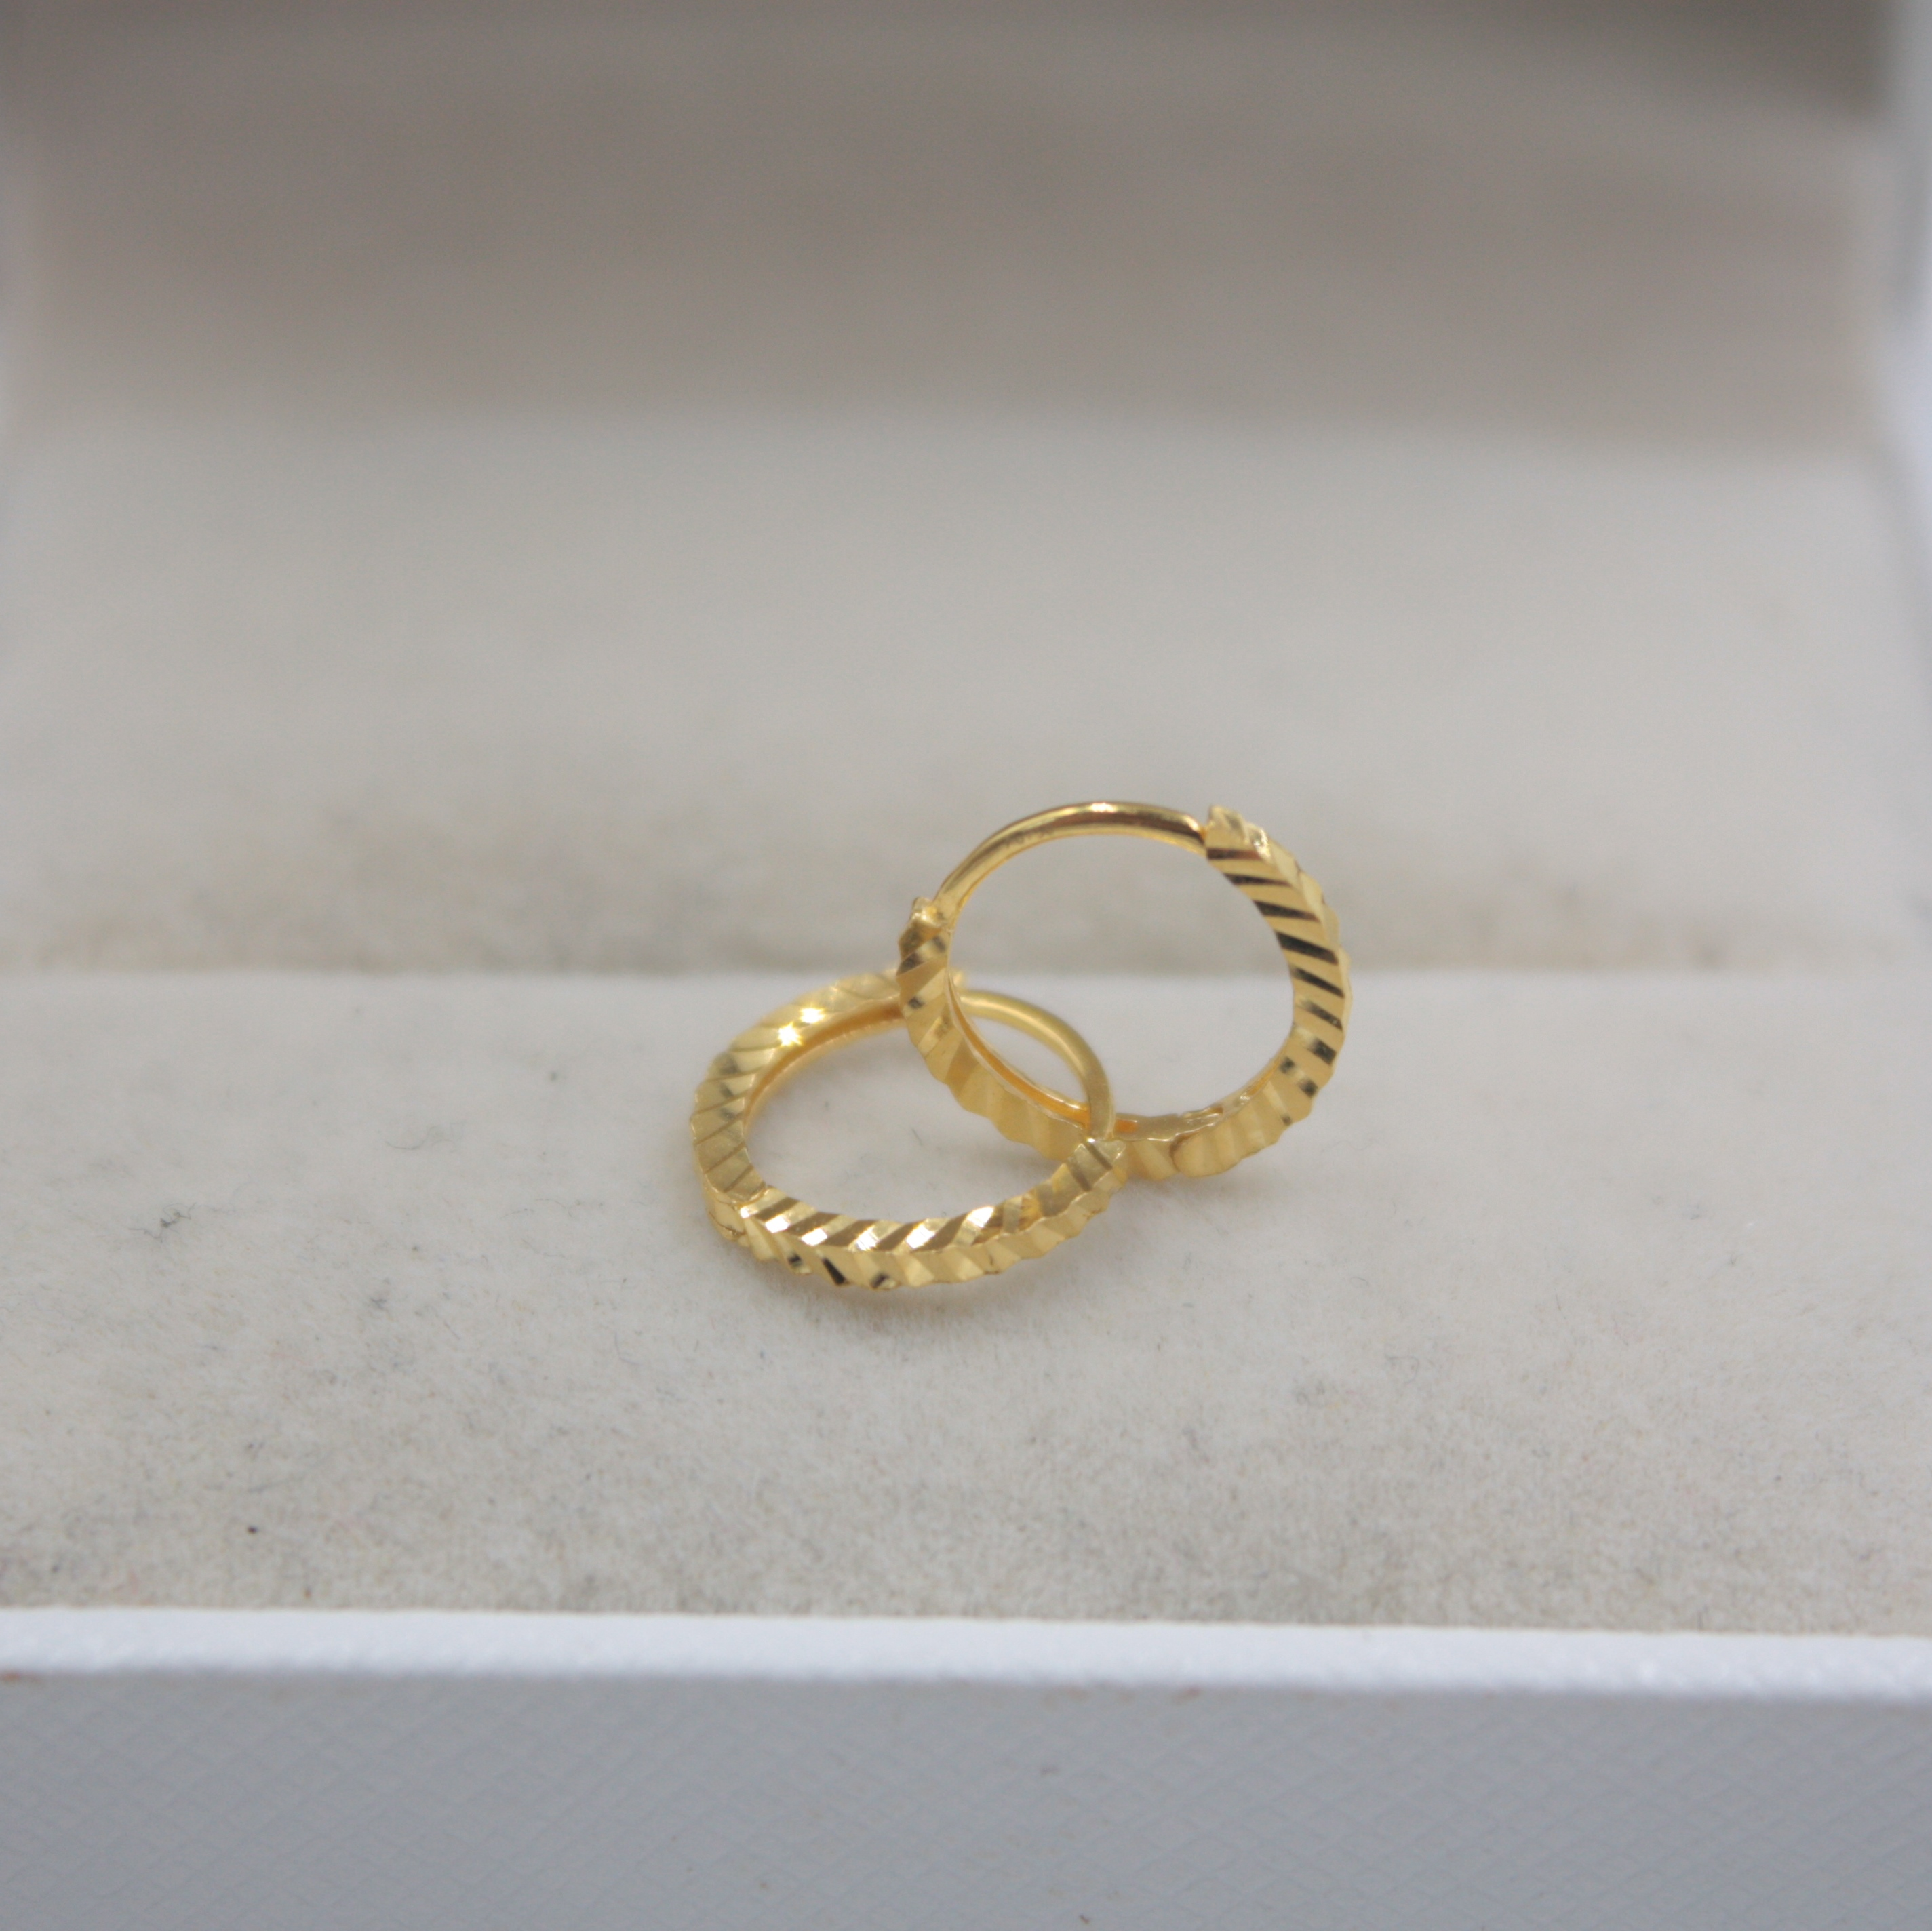 NEW Pure 18K Yellow Gold Earrings Carved Line Woman Lucky Small 10mmDia Hoop Earrings For Women Girl 0.7-0.8g Hot